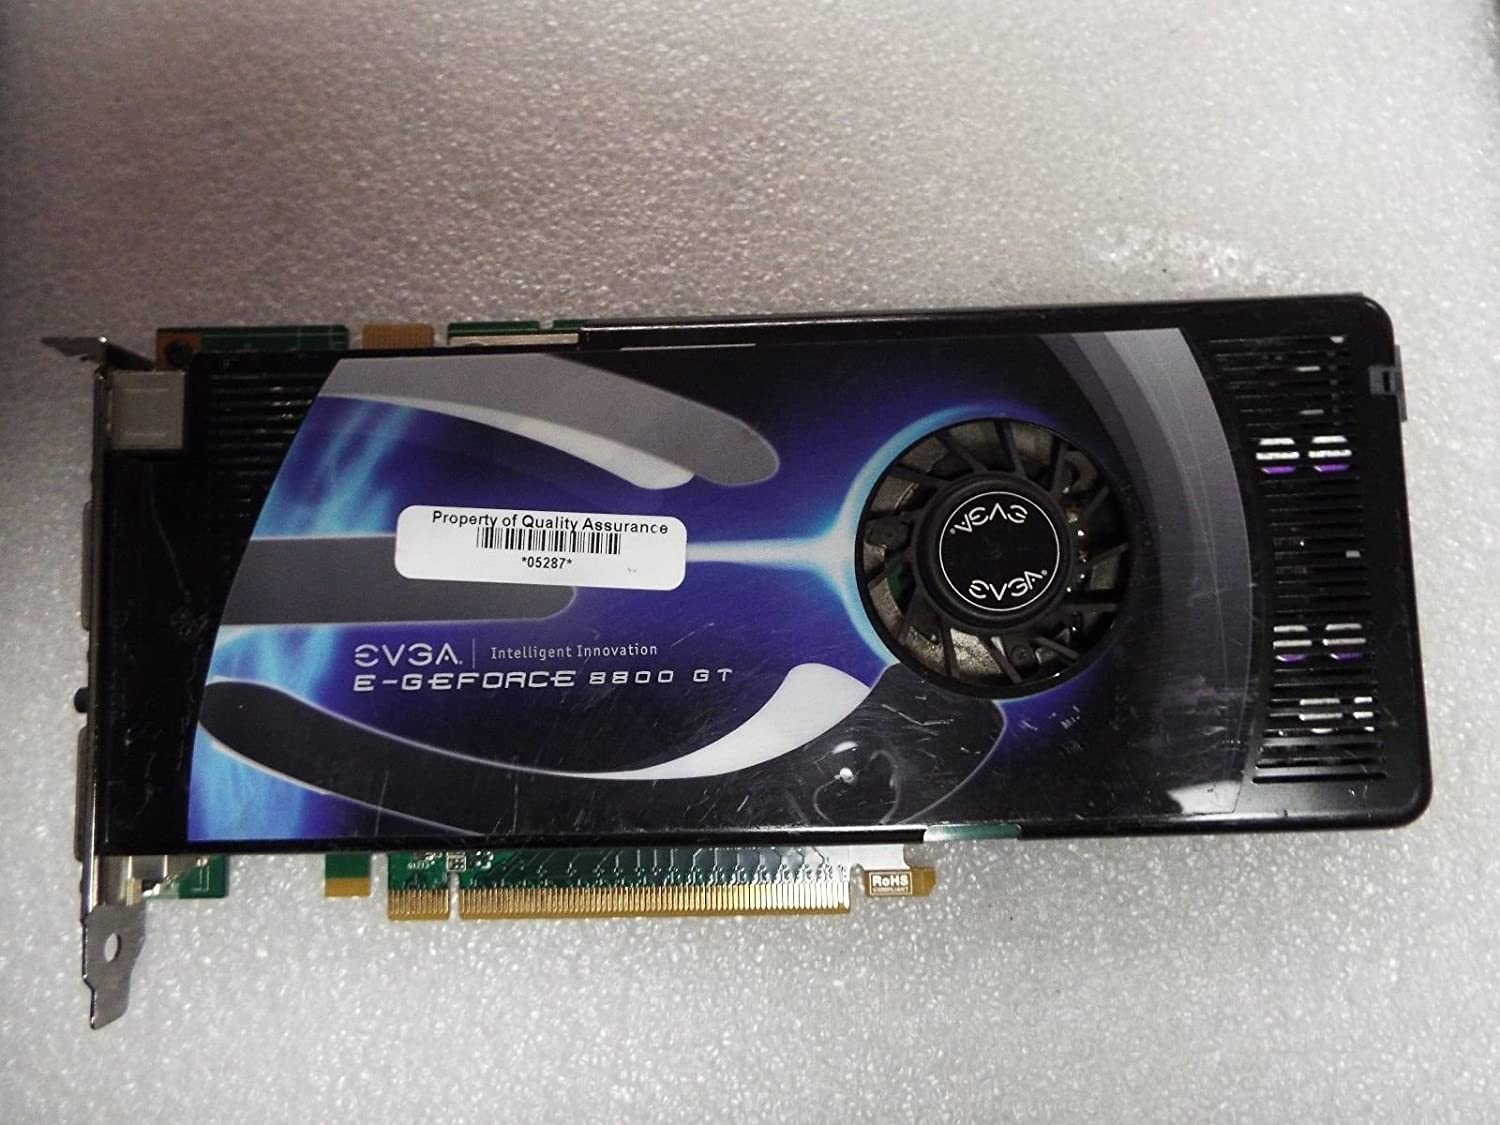 256 P2 N761 B1 evga 256 P2 N761 B1 EVGA 256 P2 N560 BX NVIDIA GEFORCE 7900GT 256MB PCI E Dual DVI S Video